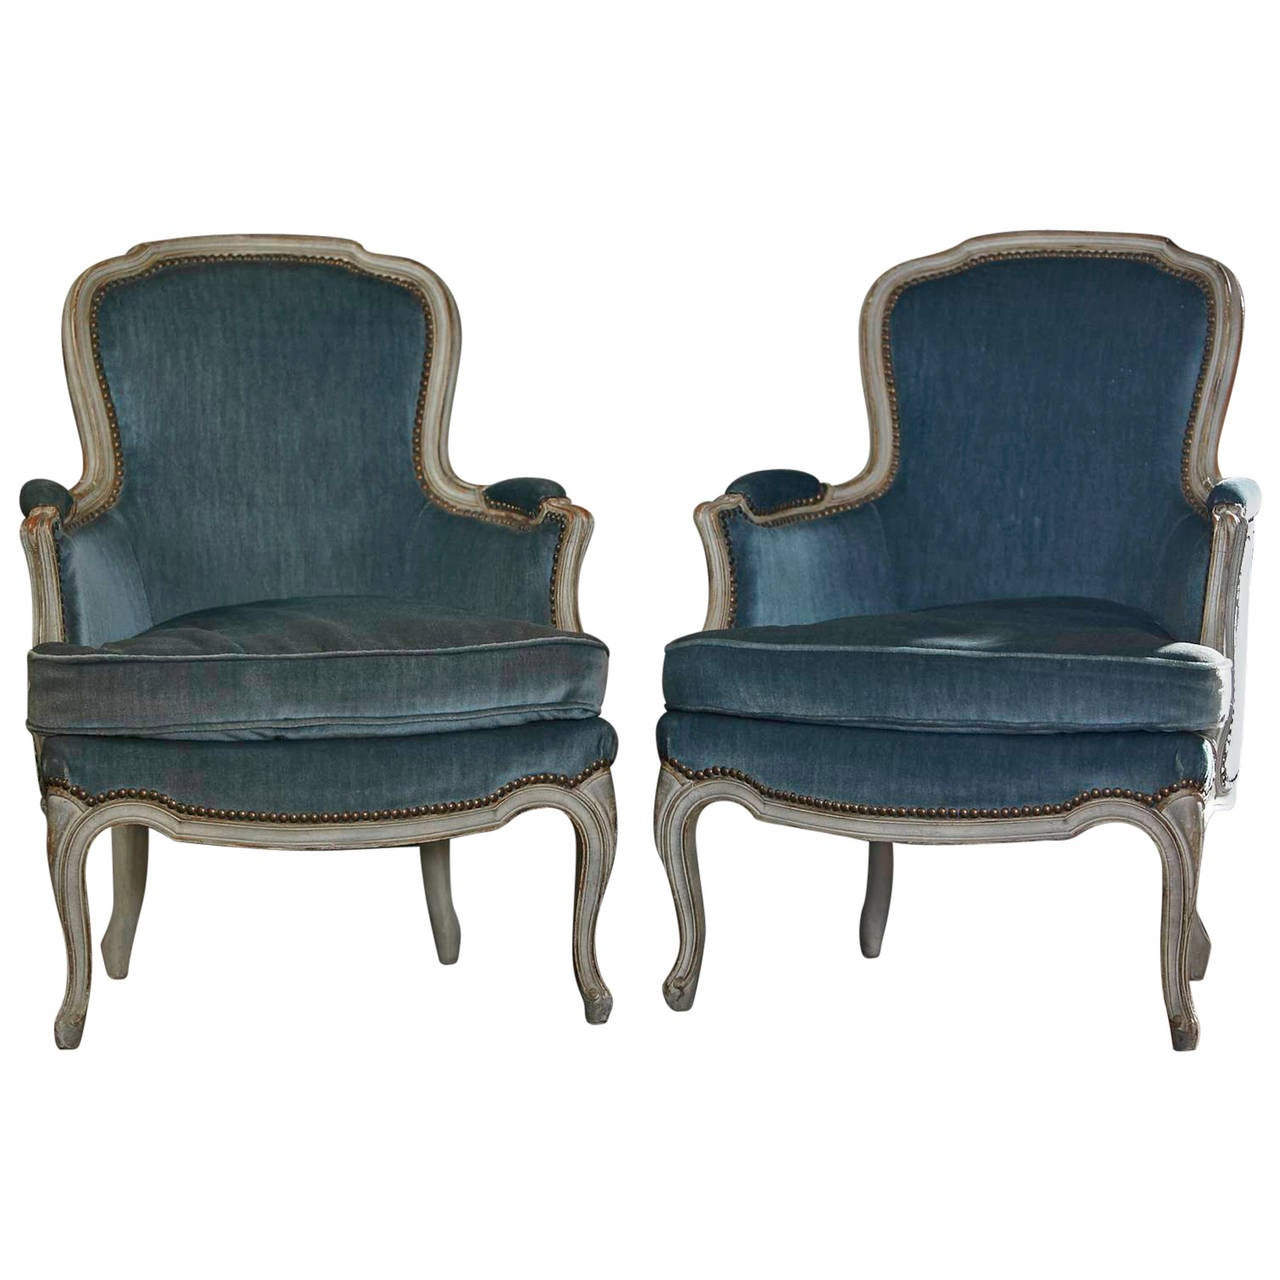 Pair of antique louis xv style fauteuils france ca 1900 at 1stdibs - Fauteuil style louis xv ...